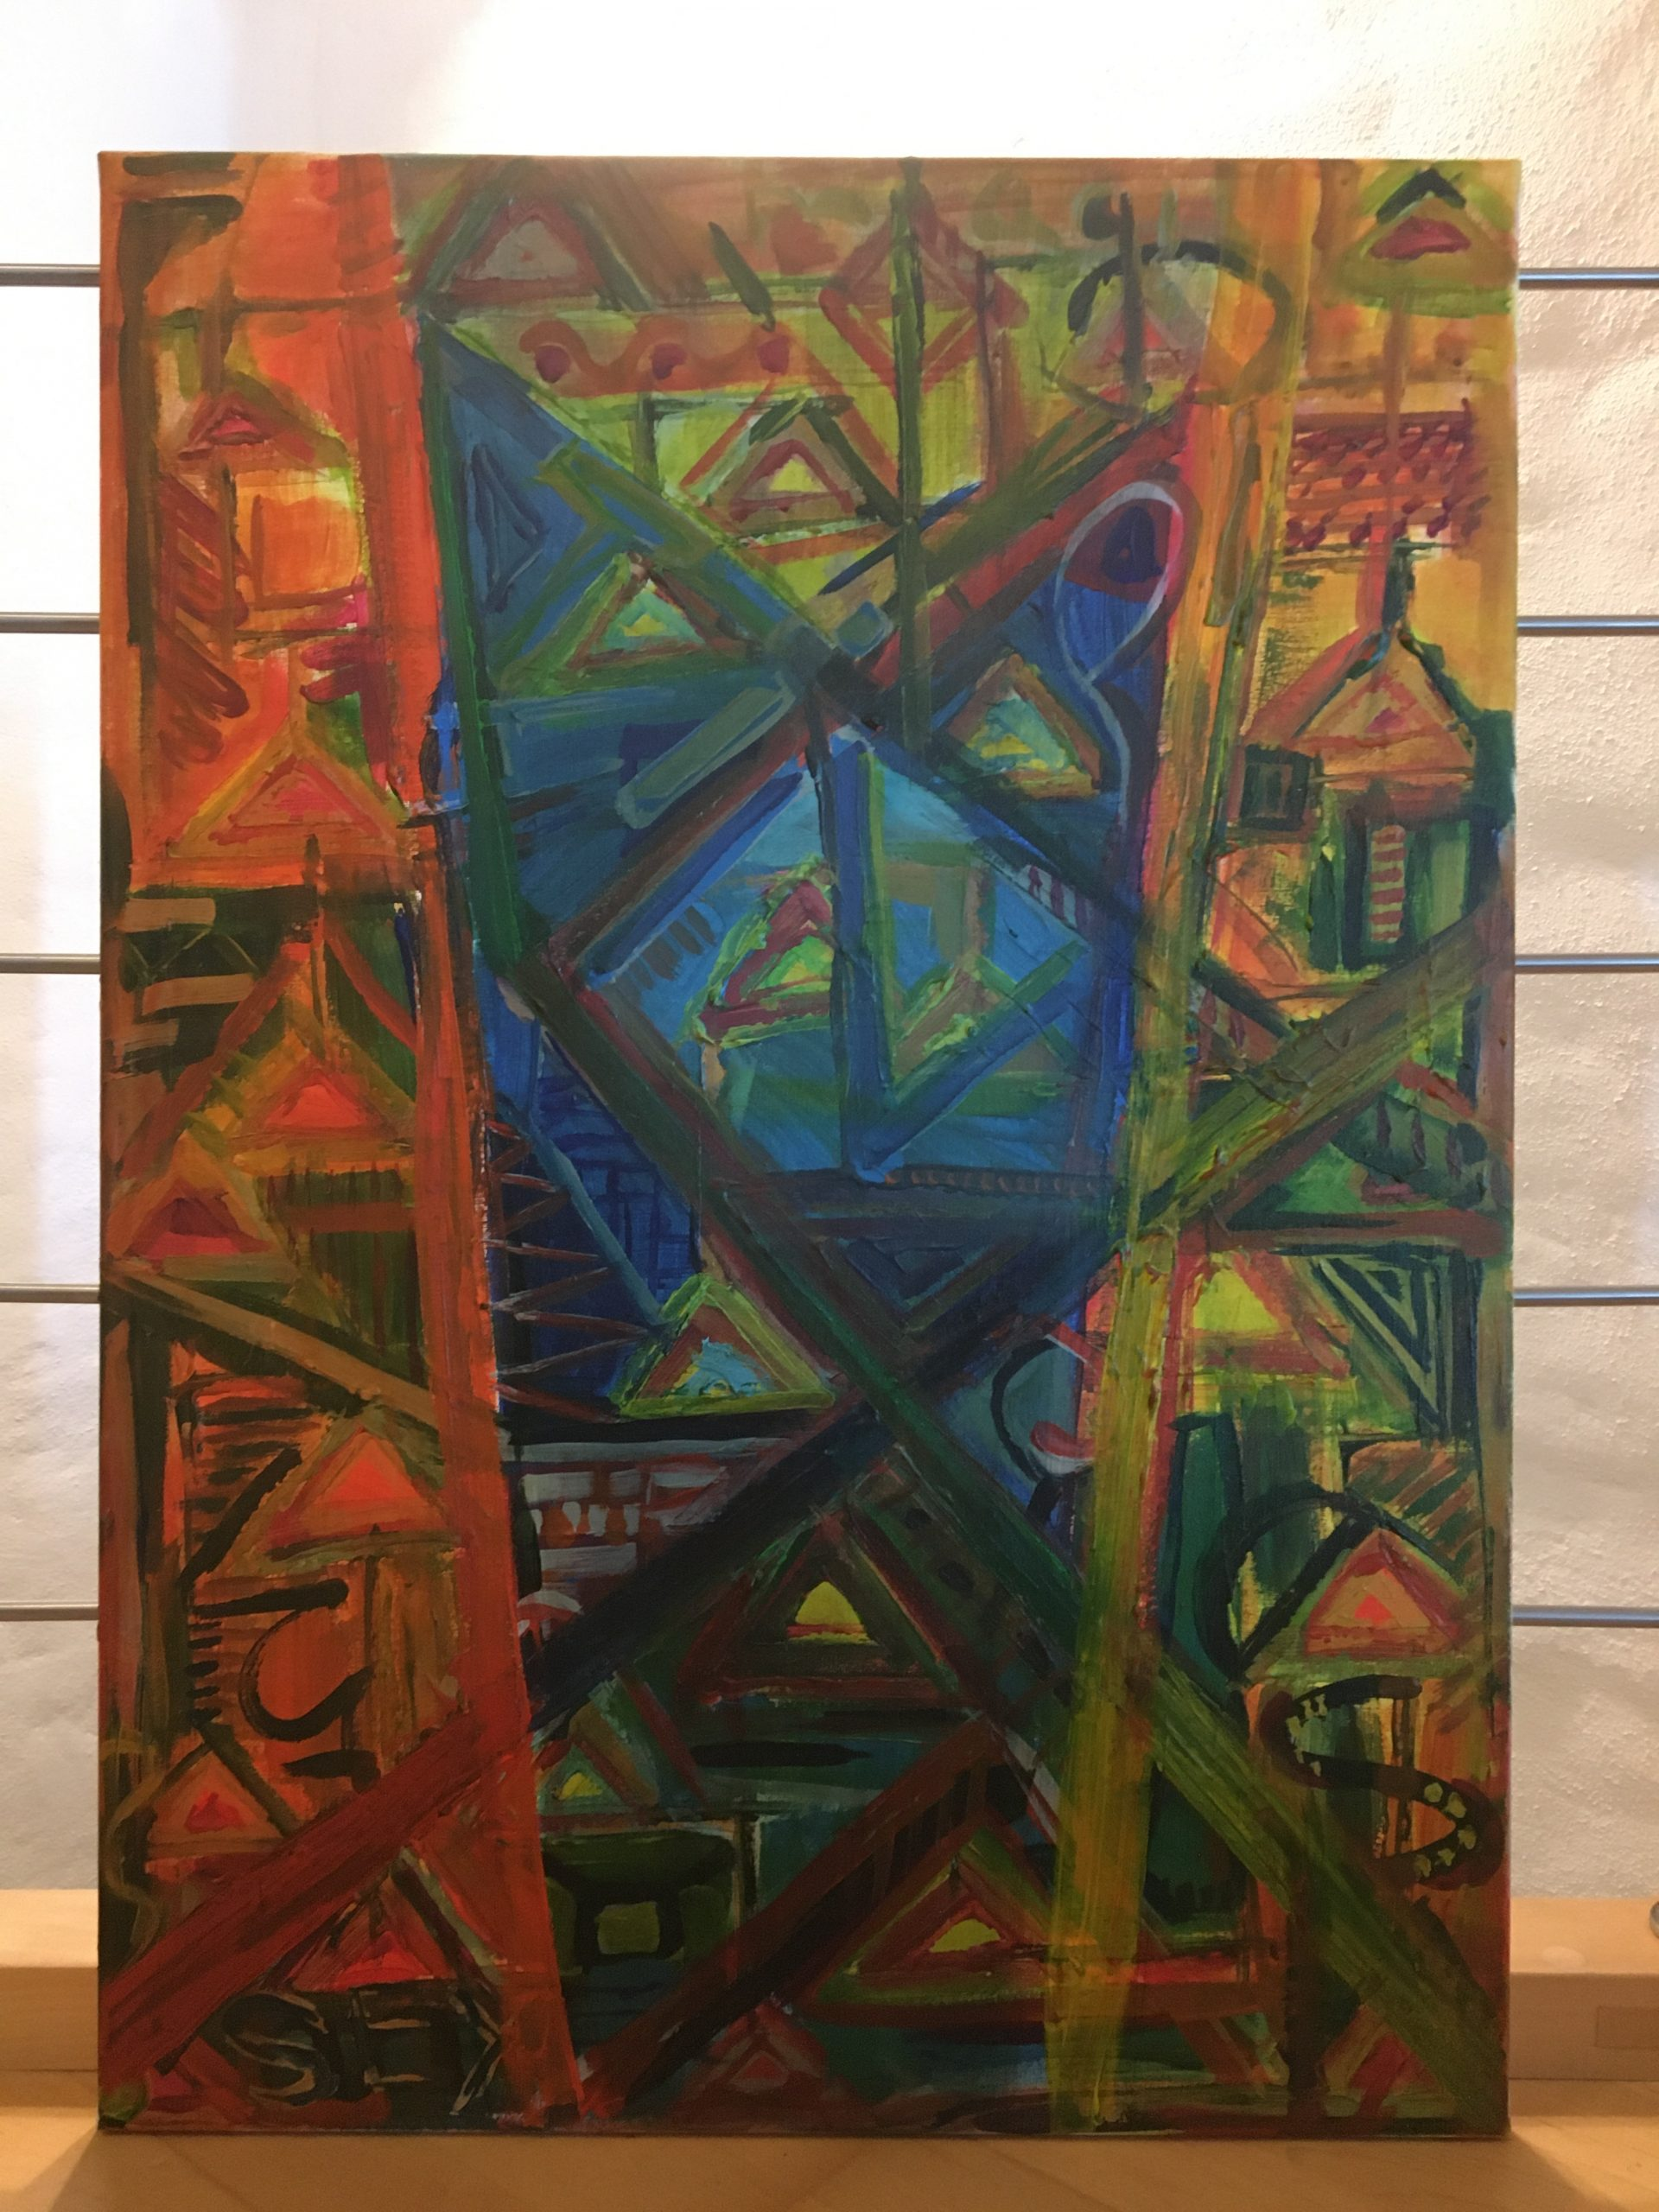 20201003_triadic-perspective_acrylic-on-canvas-50-x-70-cm_mathias-sager-3